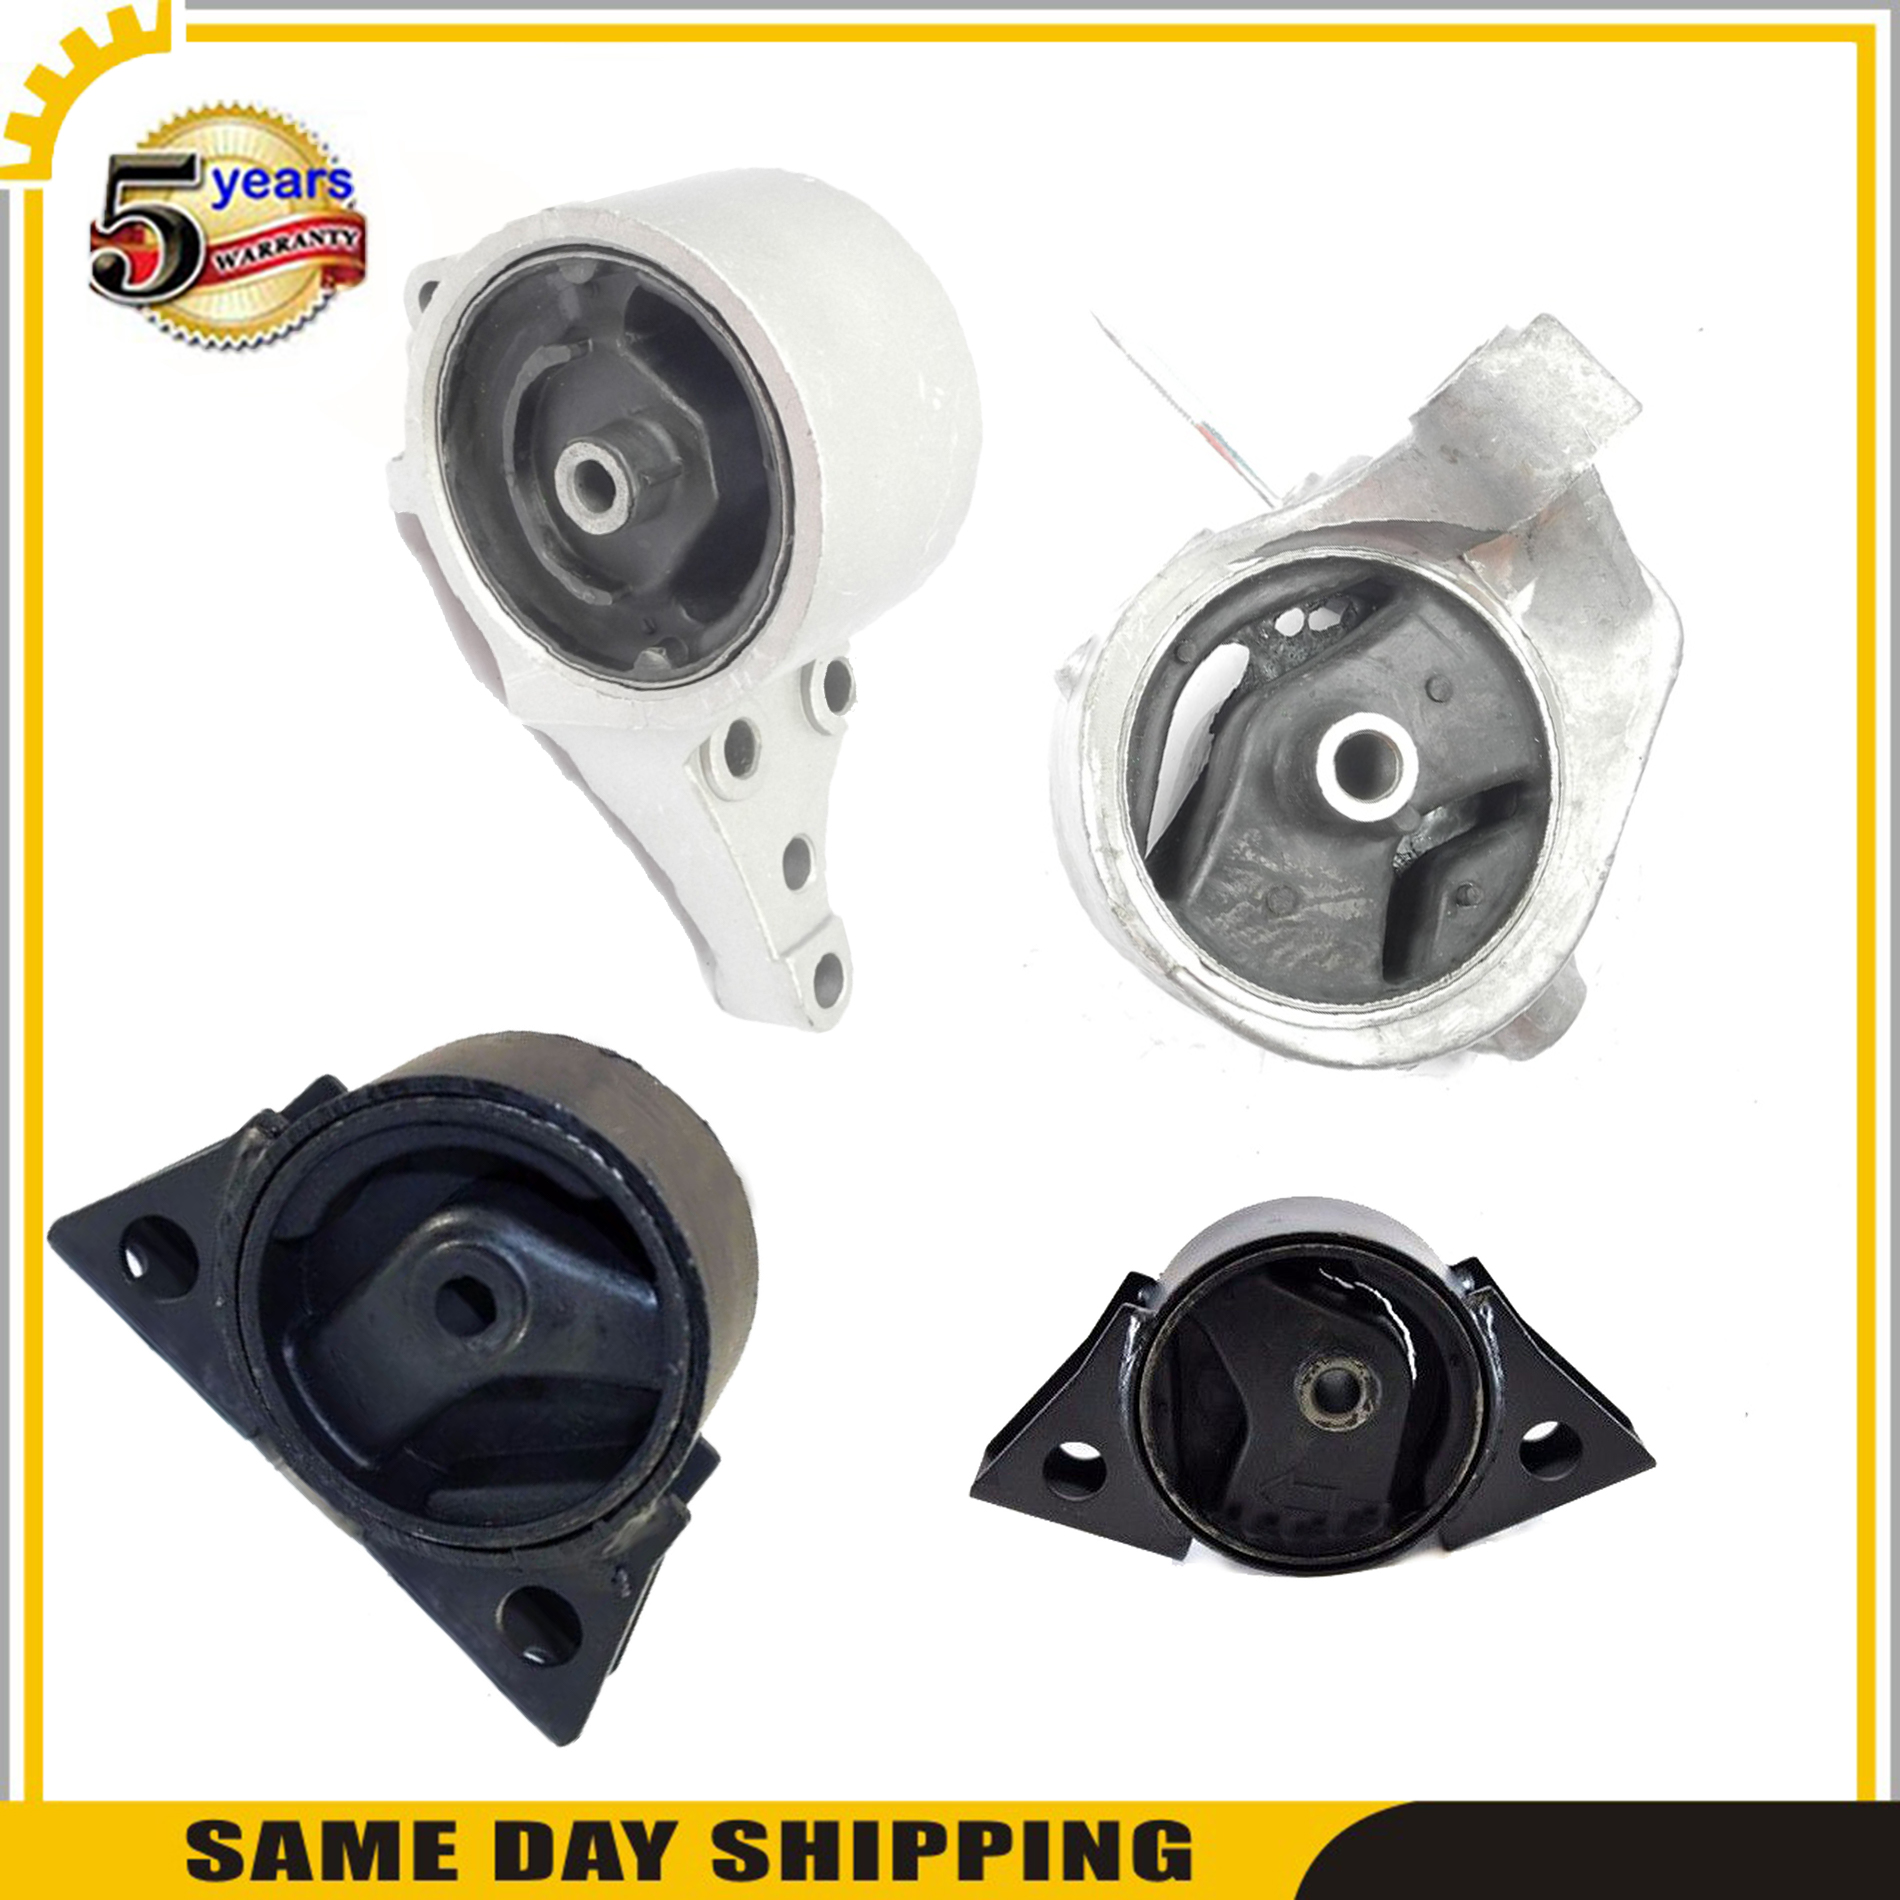 Motor and Transmission Mount Kit compatible with Nissan Altima 98-01